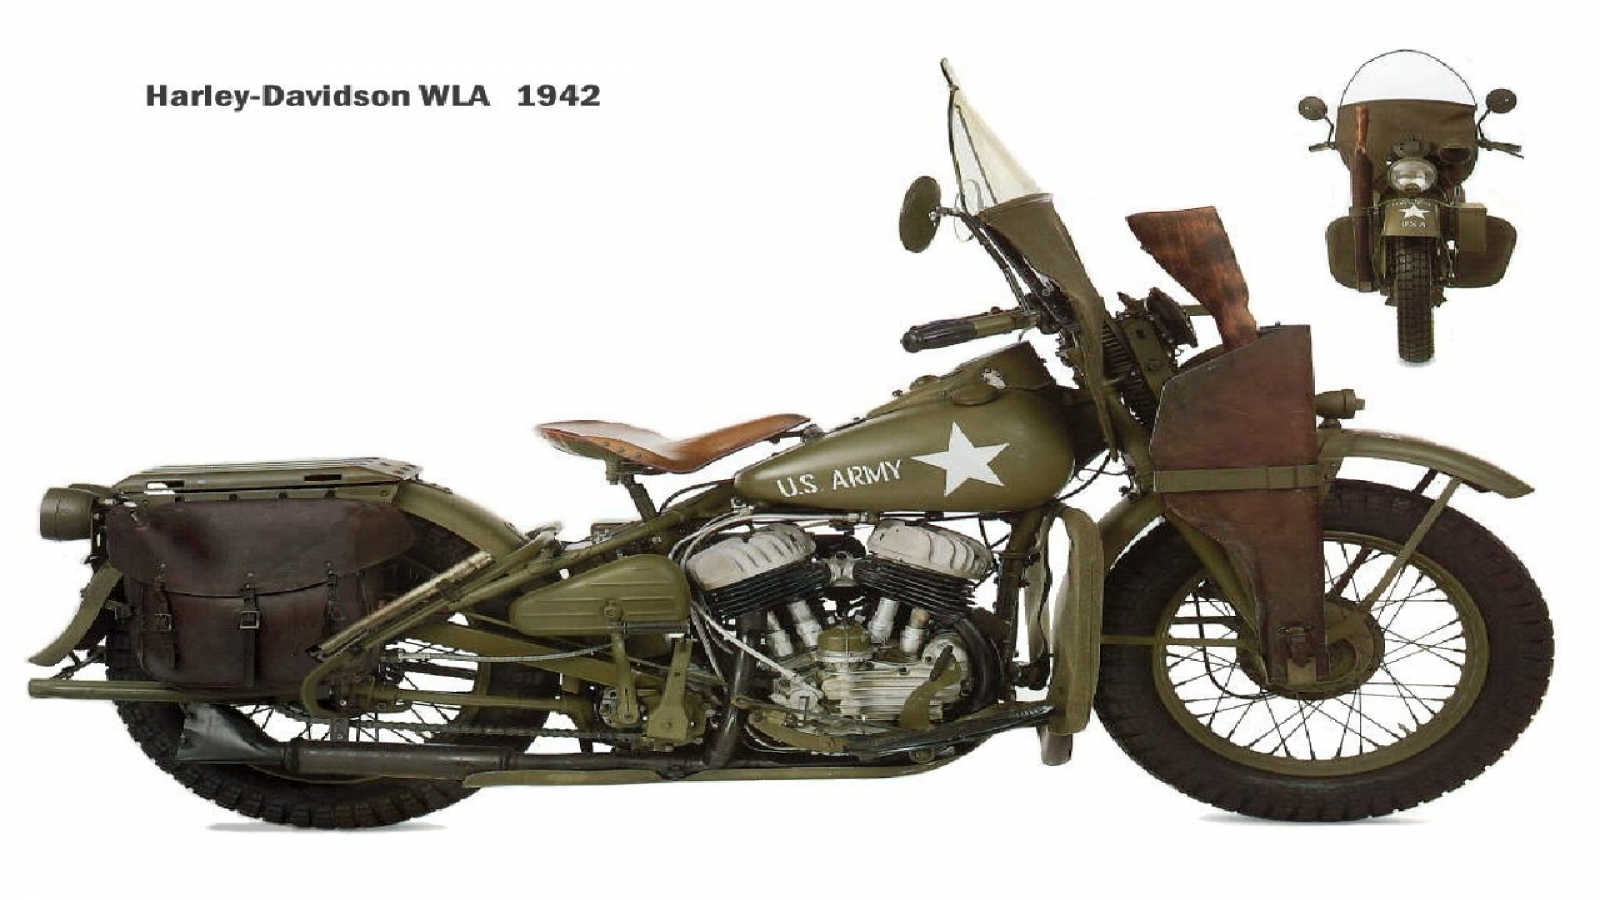 1942 Military Harley Army Bikes Motorcycles 1600x900